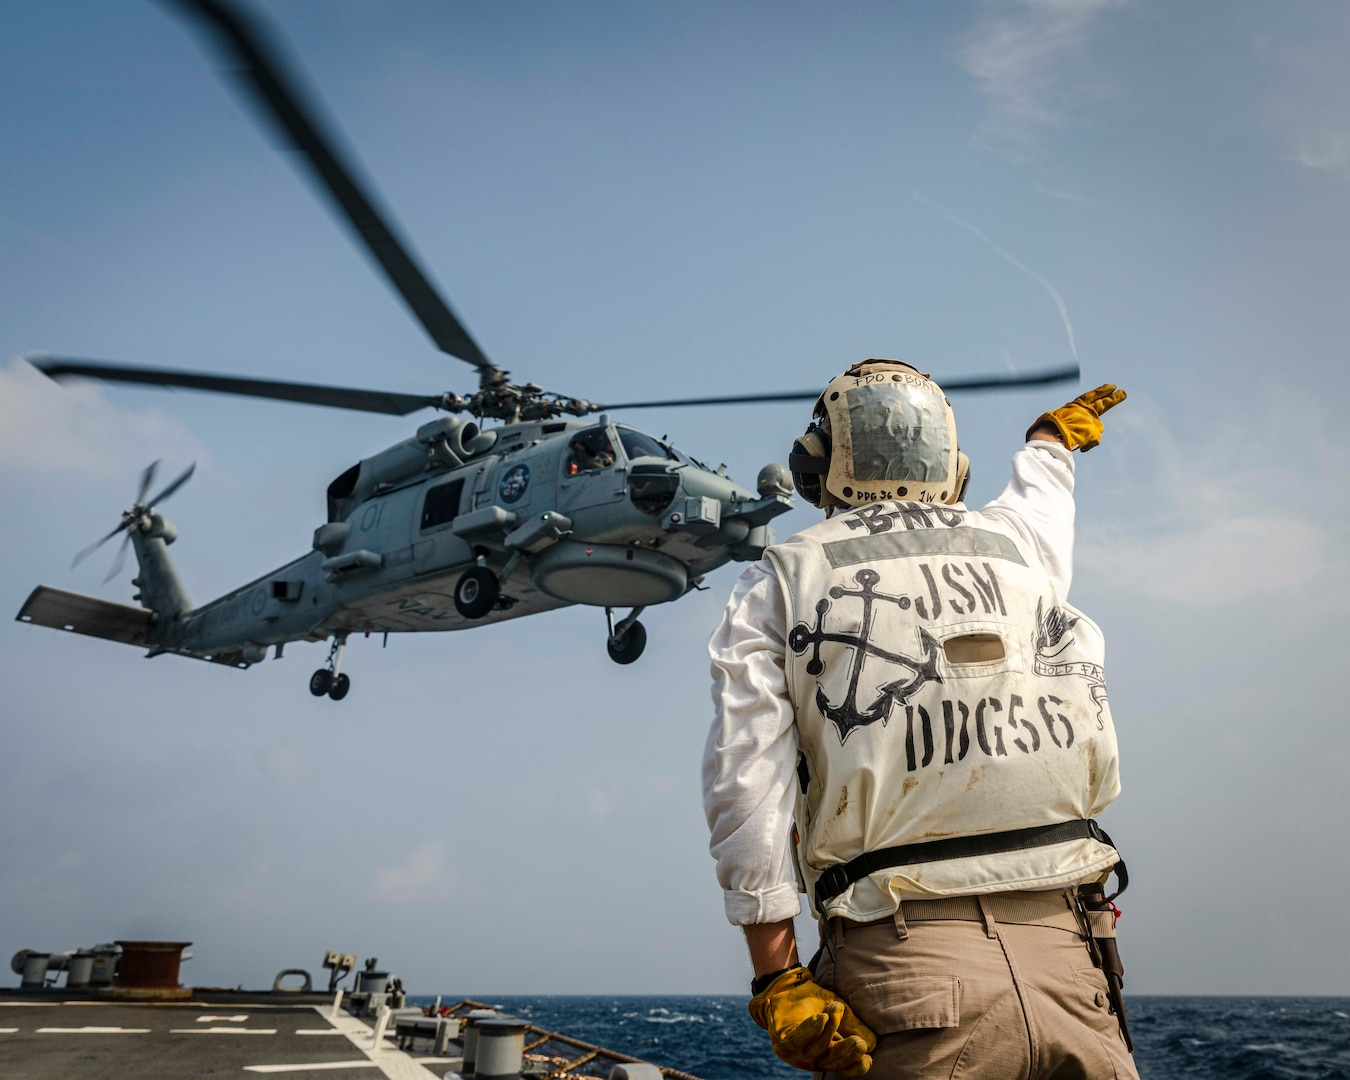 Chief Boatswain's Mate Juan Vigil, from Las Vegas, sends off an MH-60R Sea Hawk helicopter from the Royal Australian Navy Anzac-class frigate HMAS Ballarat (FFH 155) as it takes off from the flight deck aboard the Arleigh Burke-class guided-missile destroyer USS John S. McCain (DDG 56) during flight operations